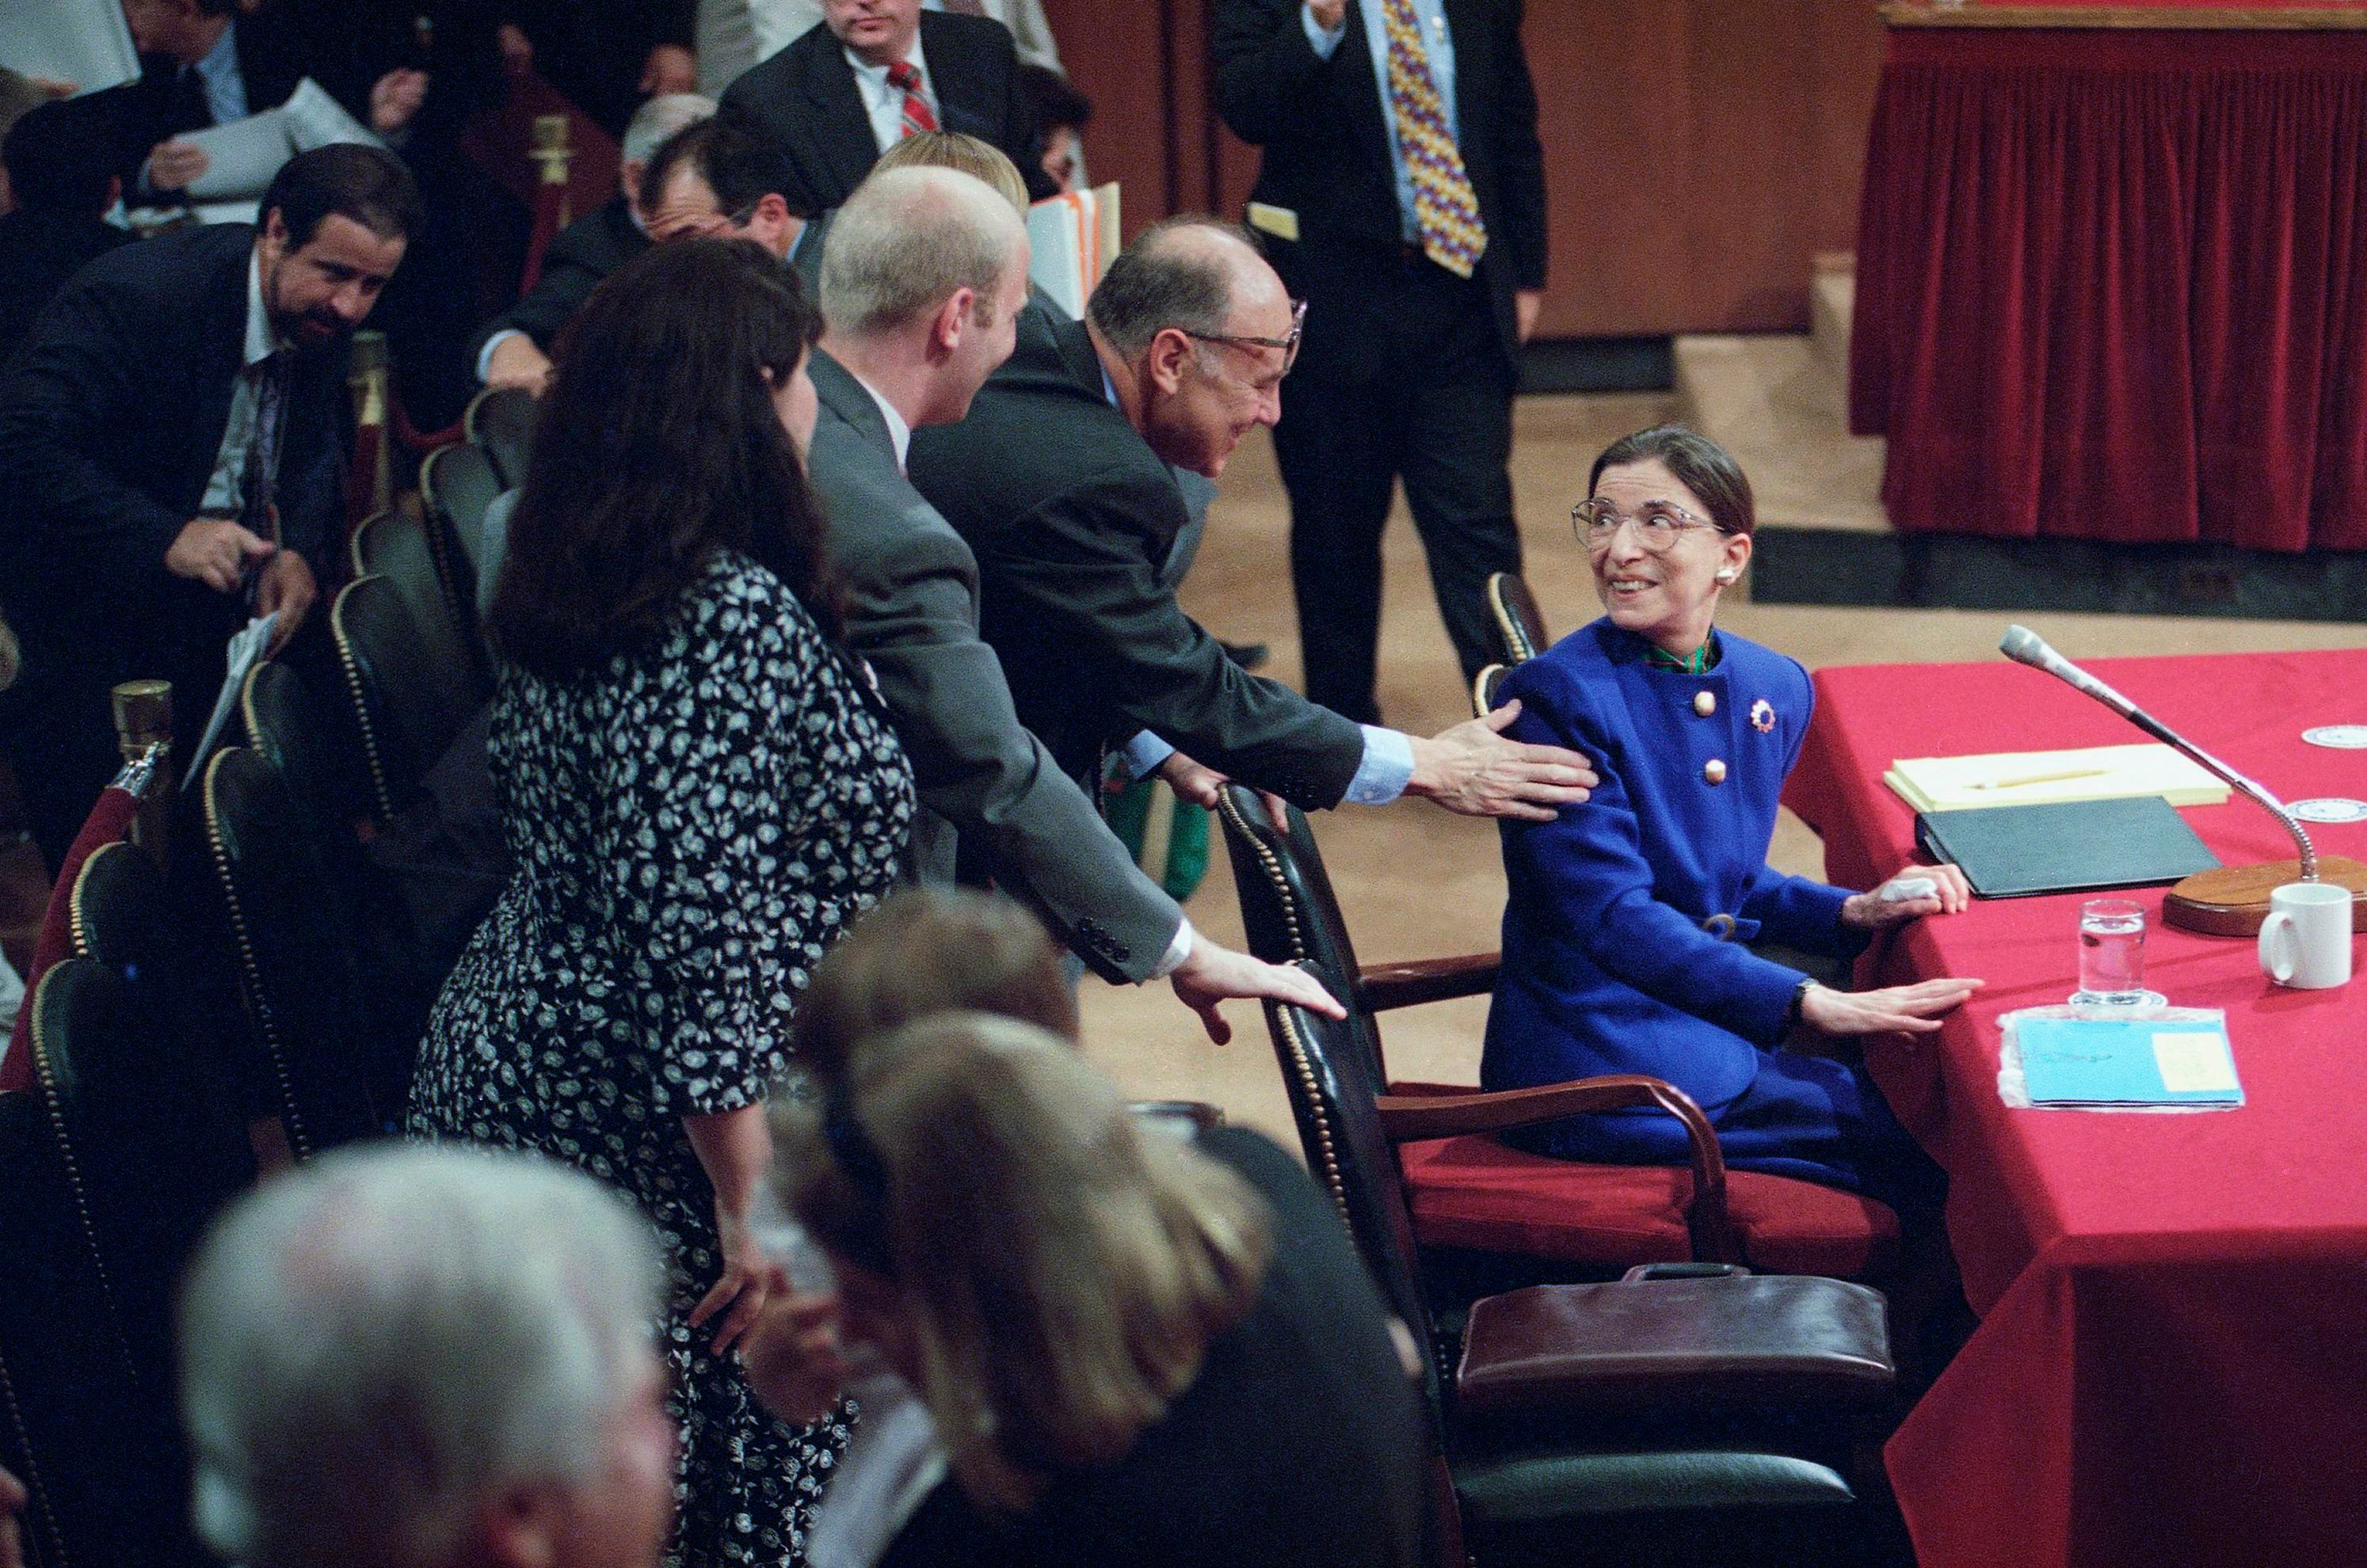 Judge Ruth Bader Ginsburg, then a Supreme Court nominee, is greeted by her husband, Martin, as she introduced her family during her confirmation hearing before the Senate Judiciary Committee on Capitol Hill in Washington on July 20, 1993.